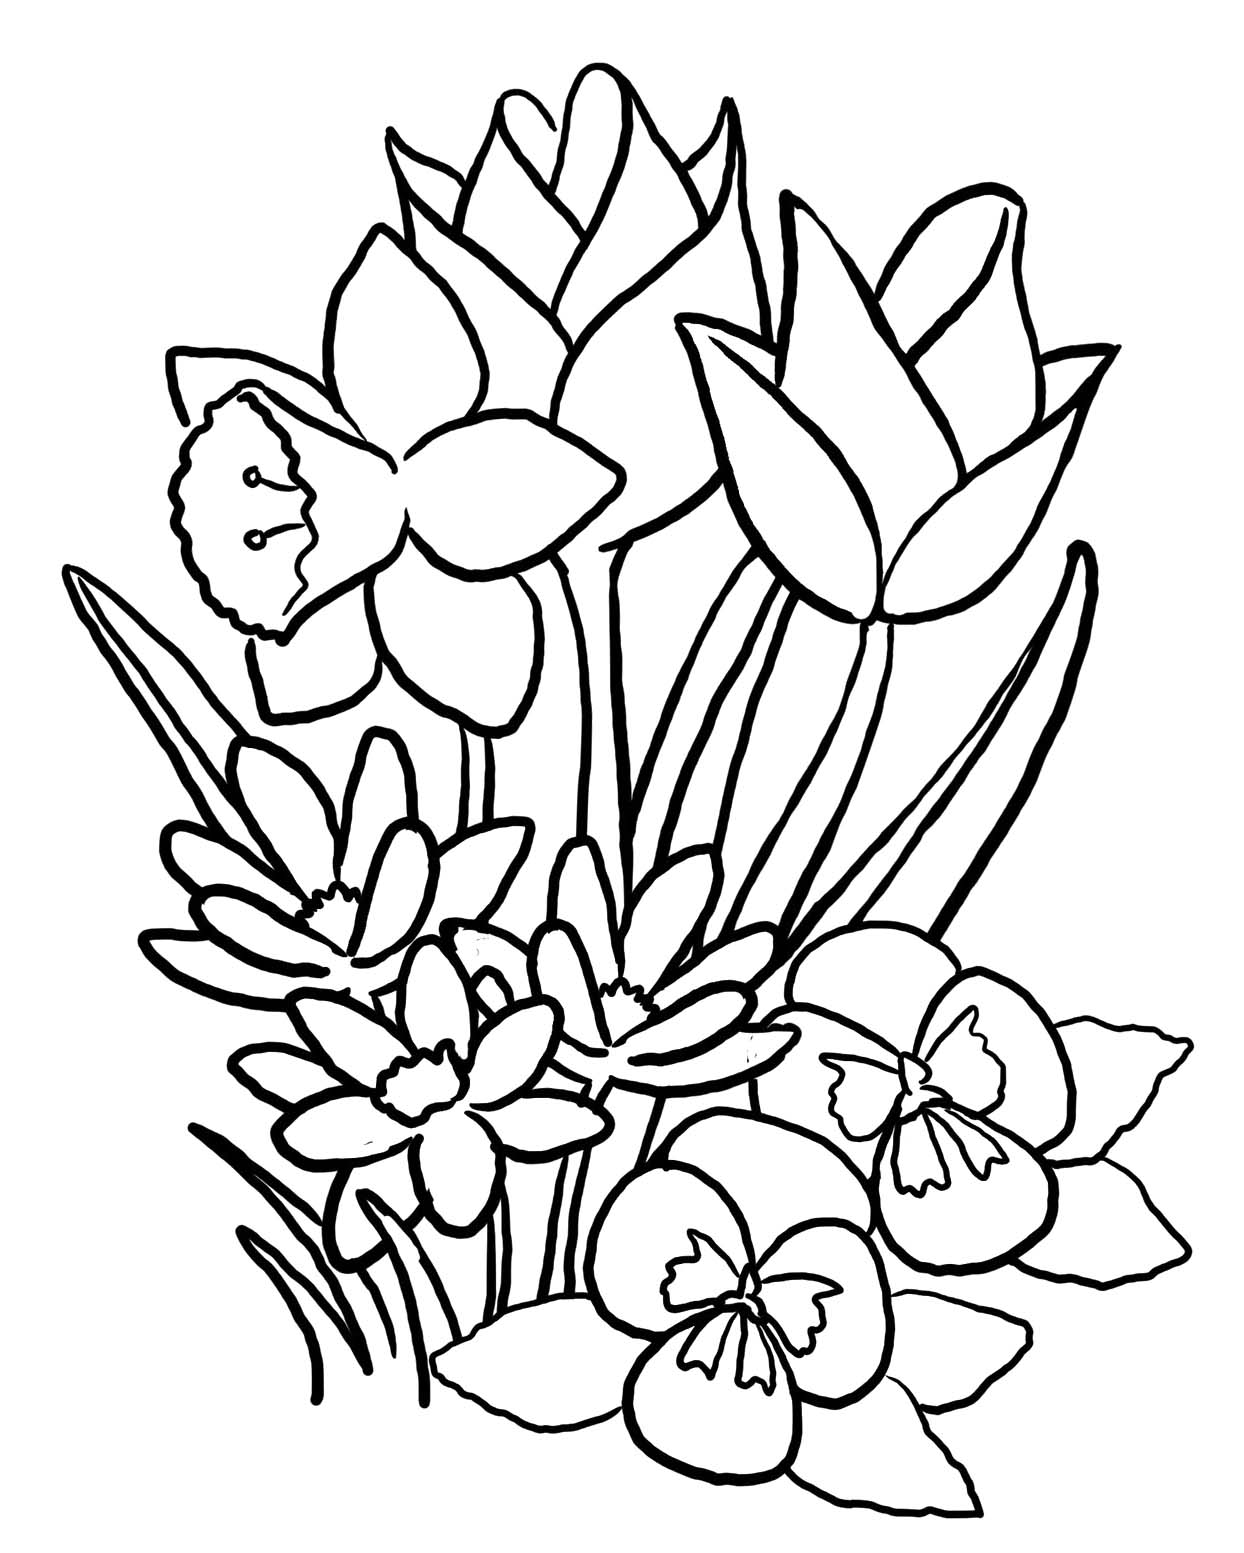 Cute Spring Flower Coloring Pages Coloring Pages For Kids #cMb ...